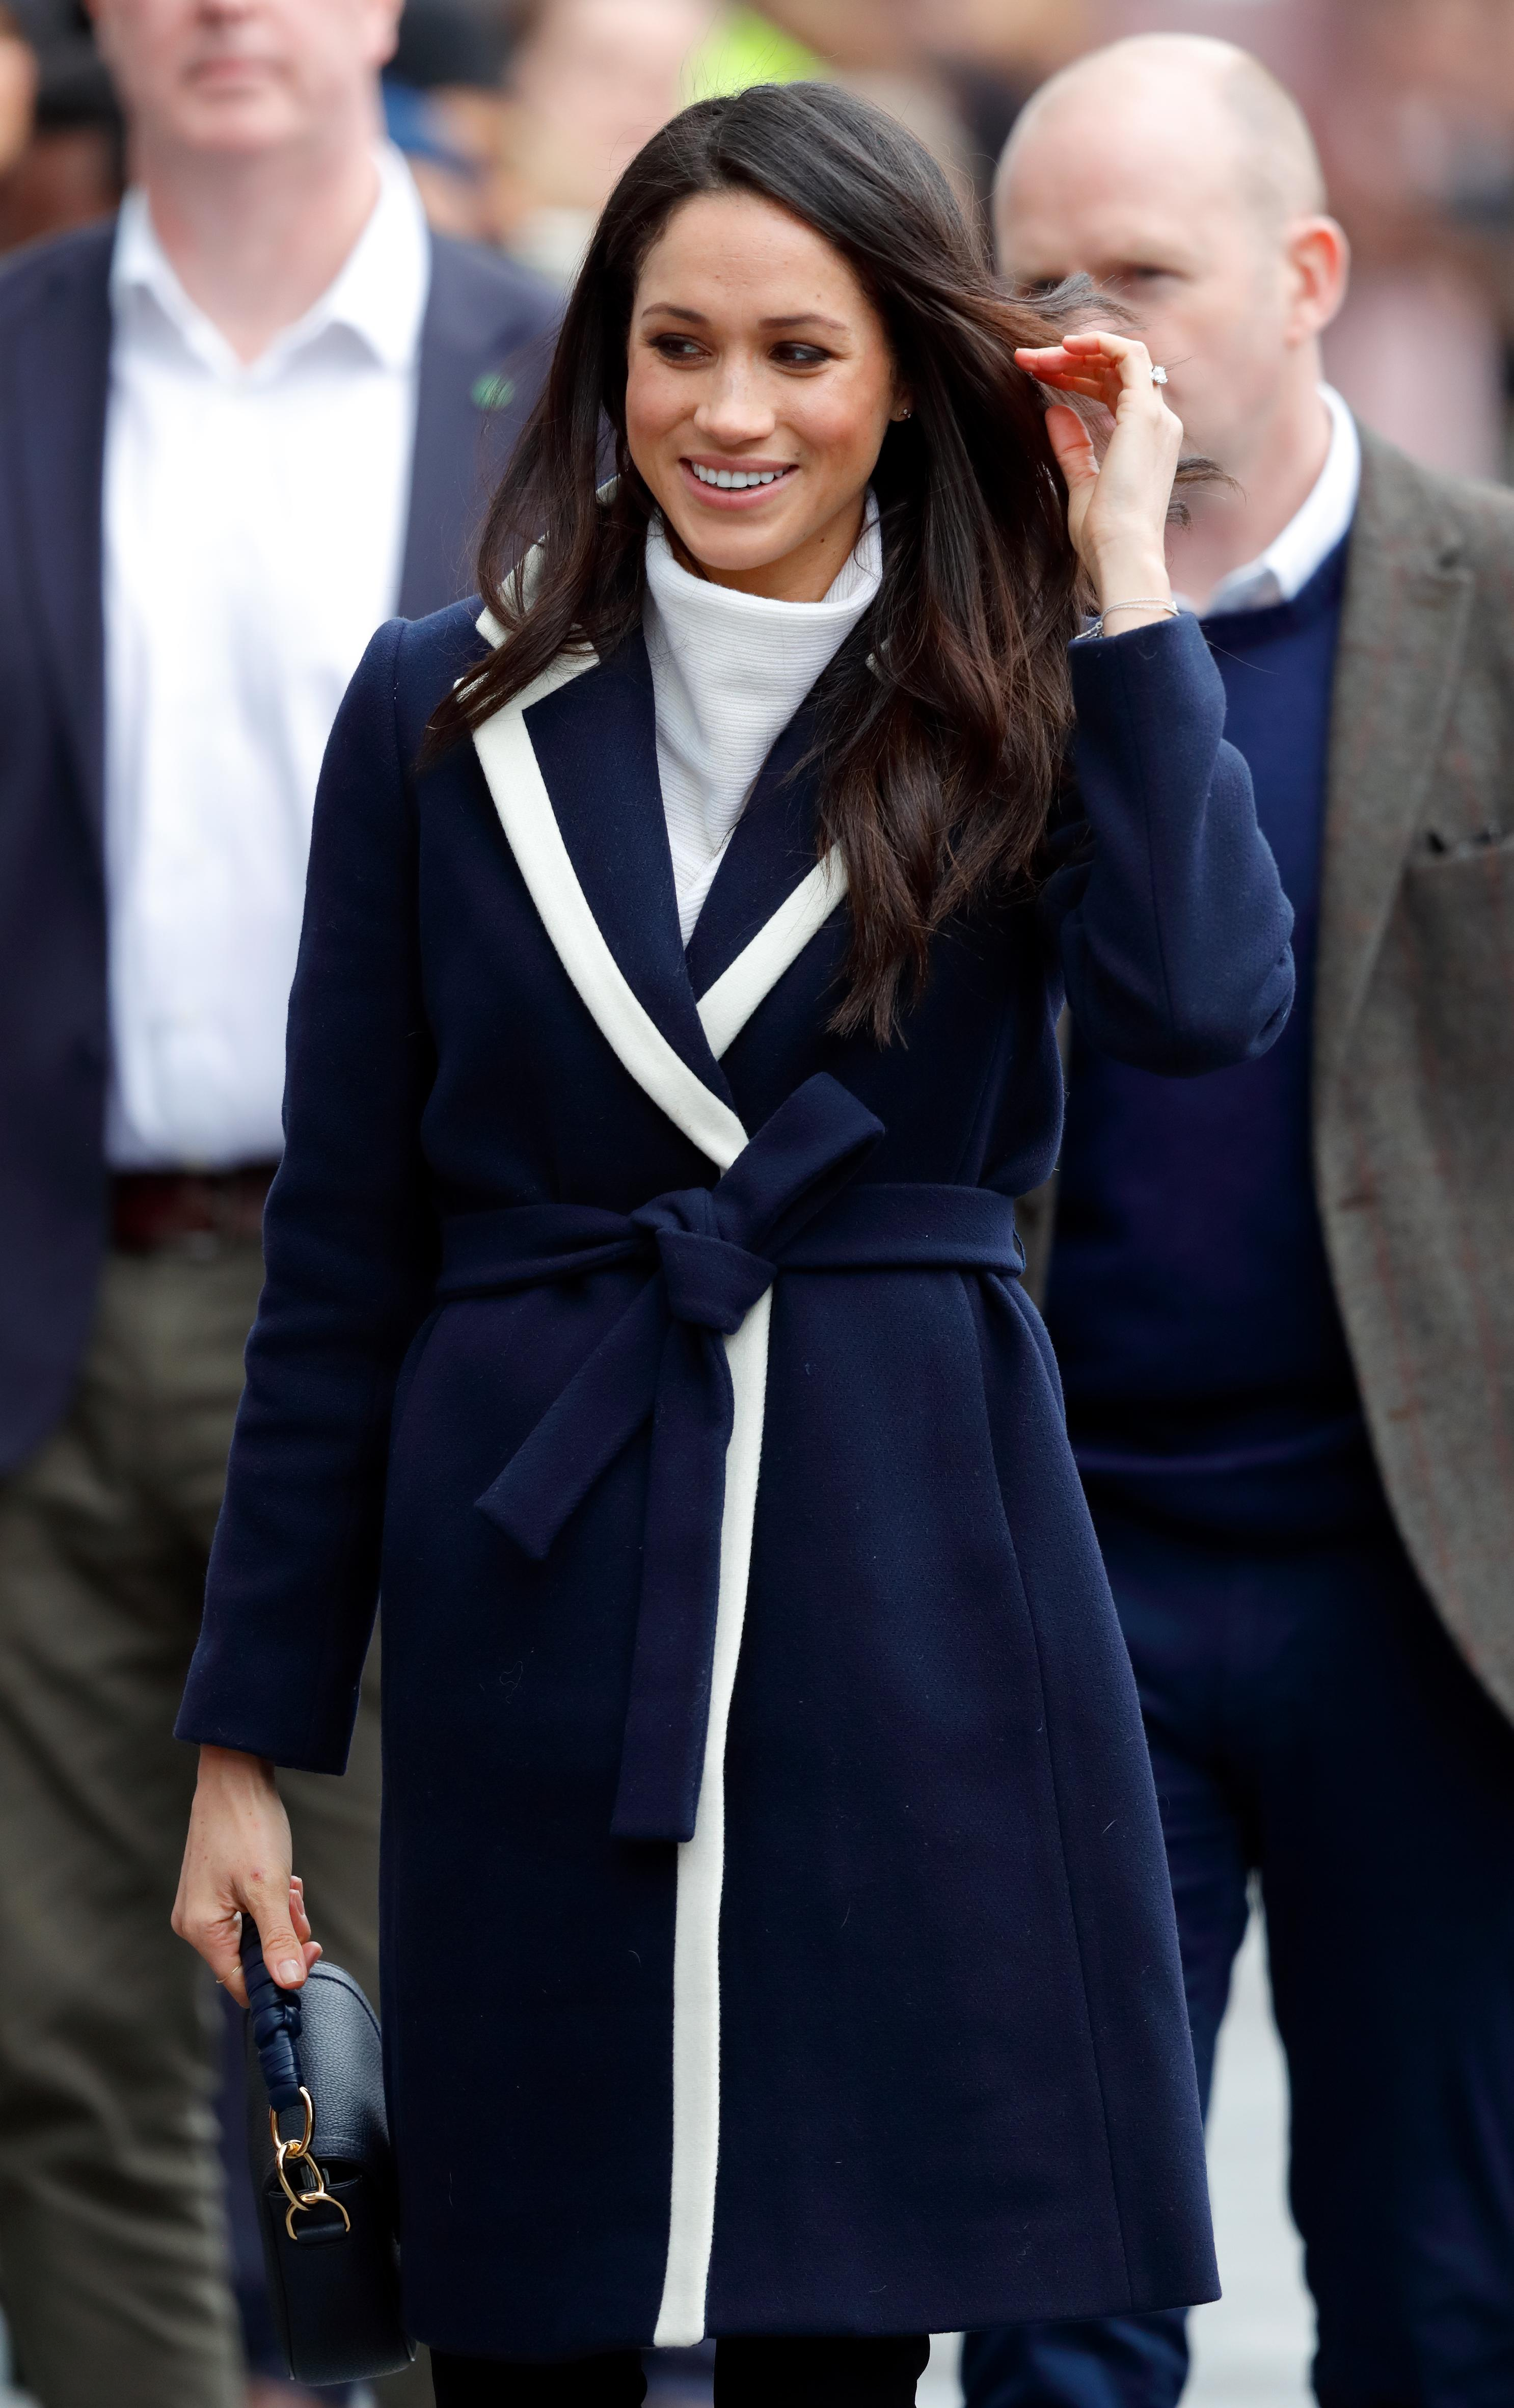 Meghan Markle Perfectly Recovered from a Technical Difficulty at an Awards Ceremony Today images